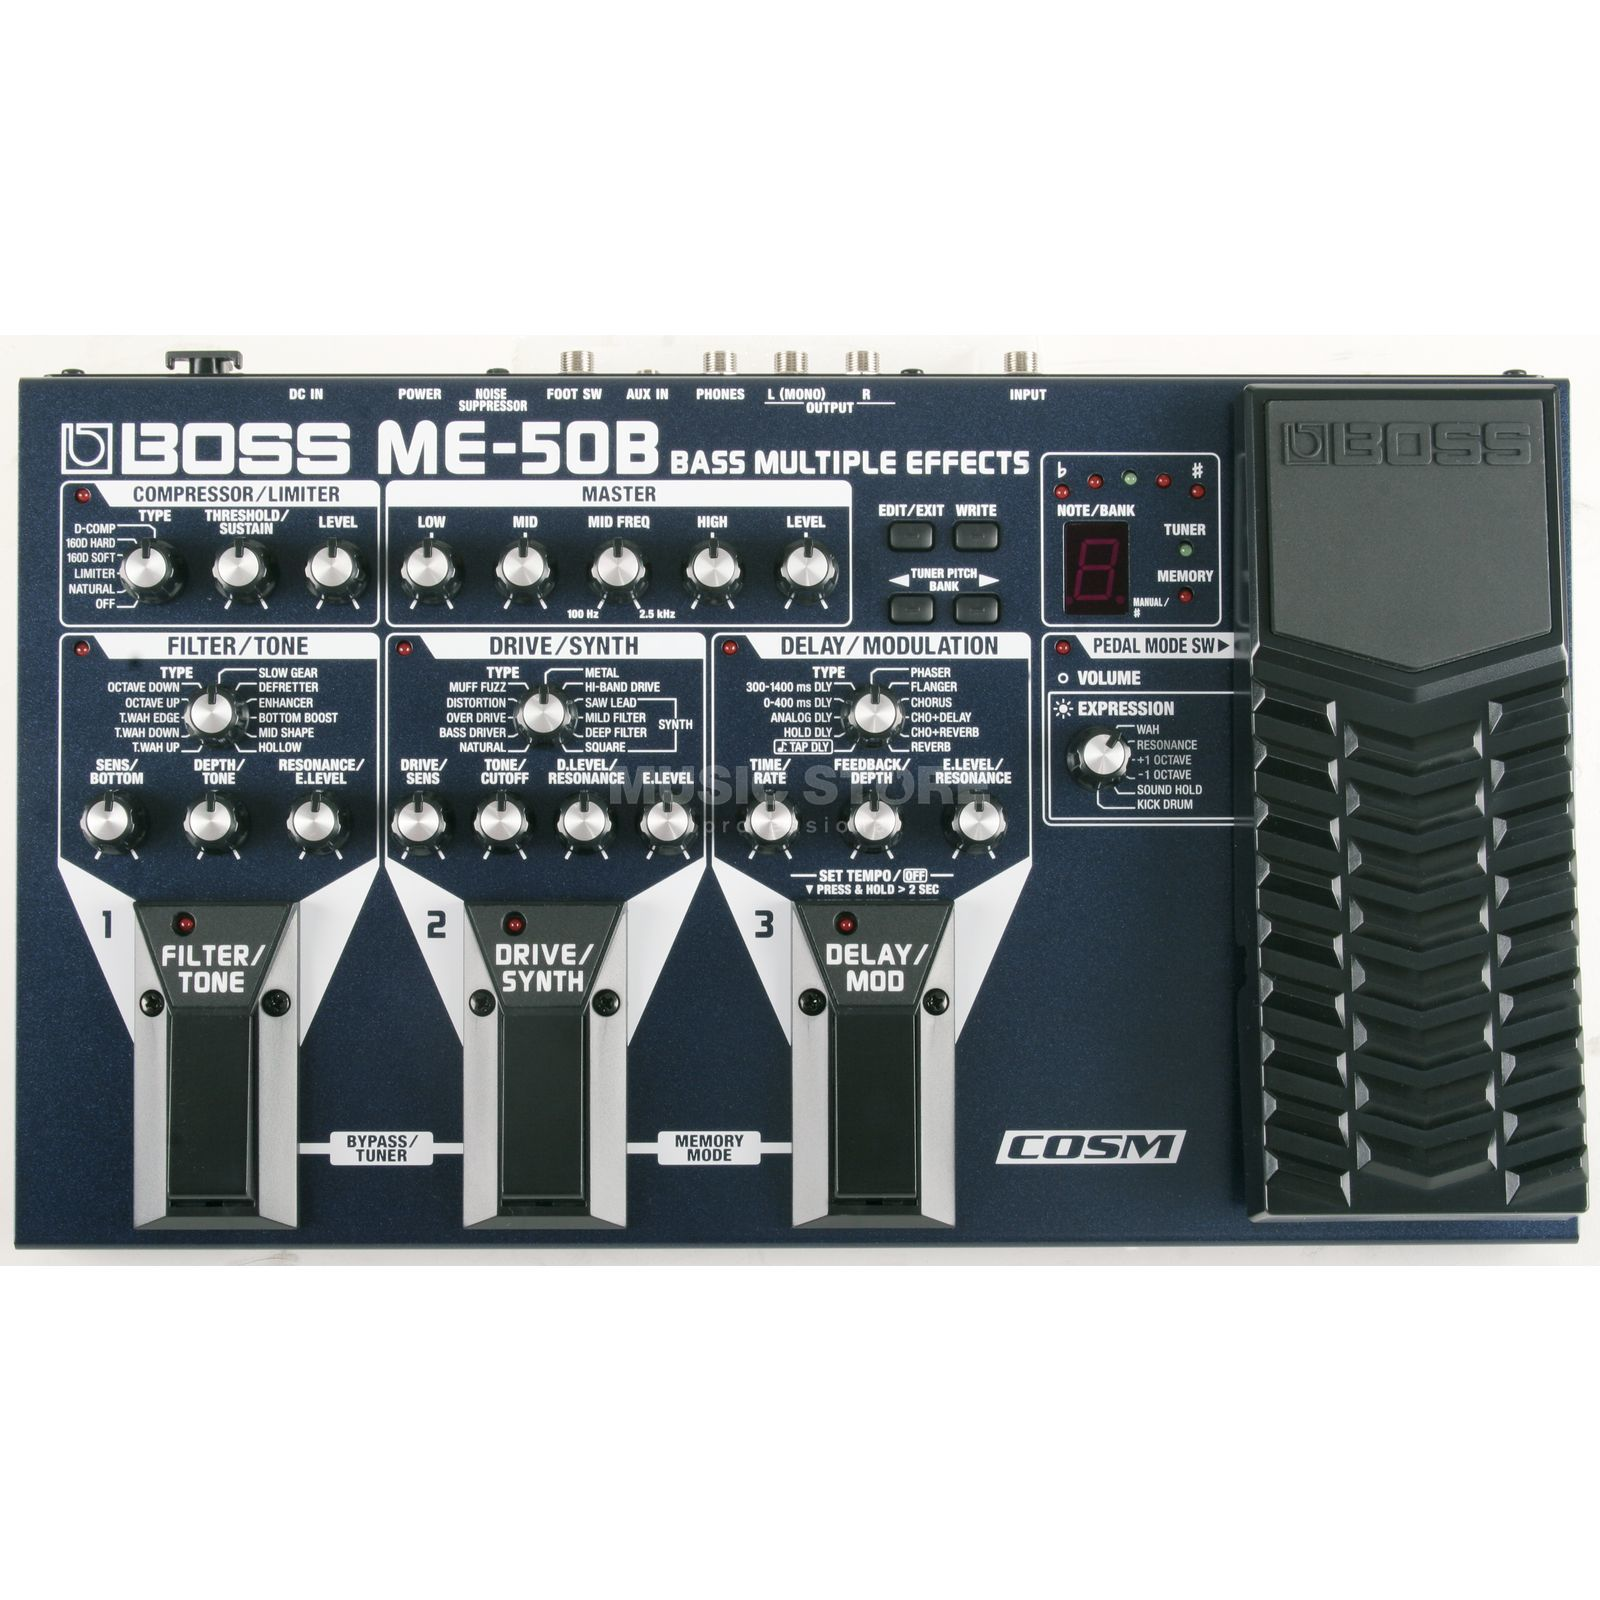 Boss ME-50B Bass Multi-FX-Processor Power Supply optional Zdjęcie produktu